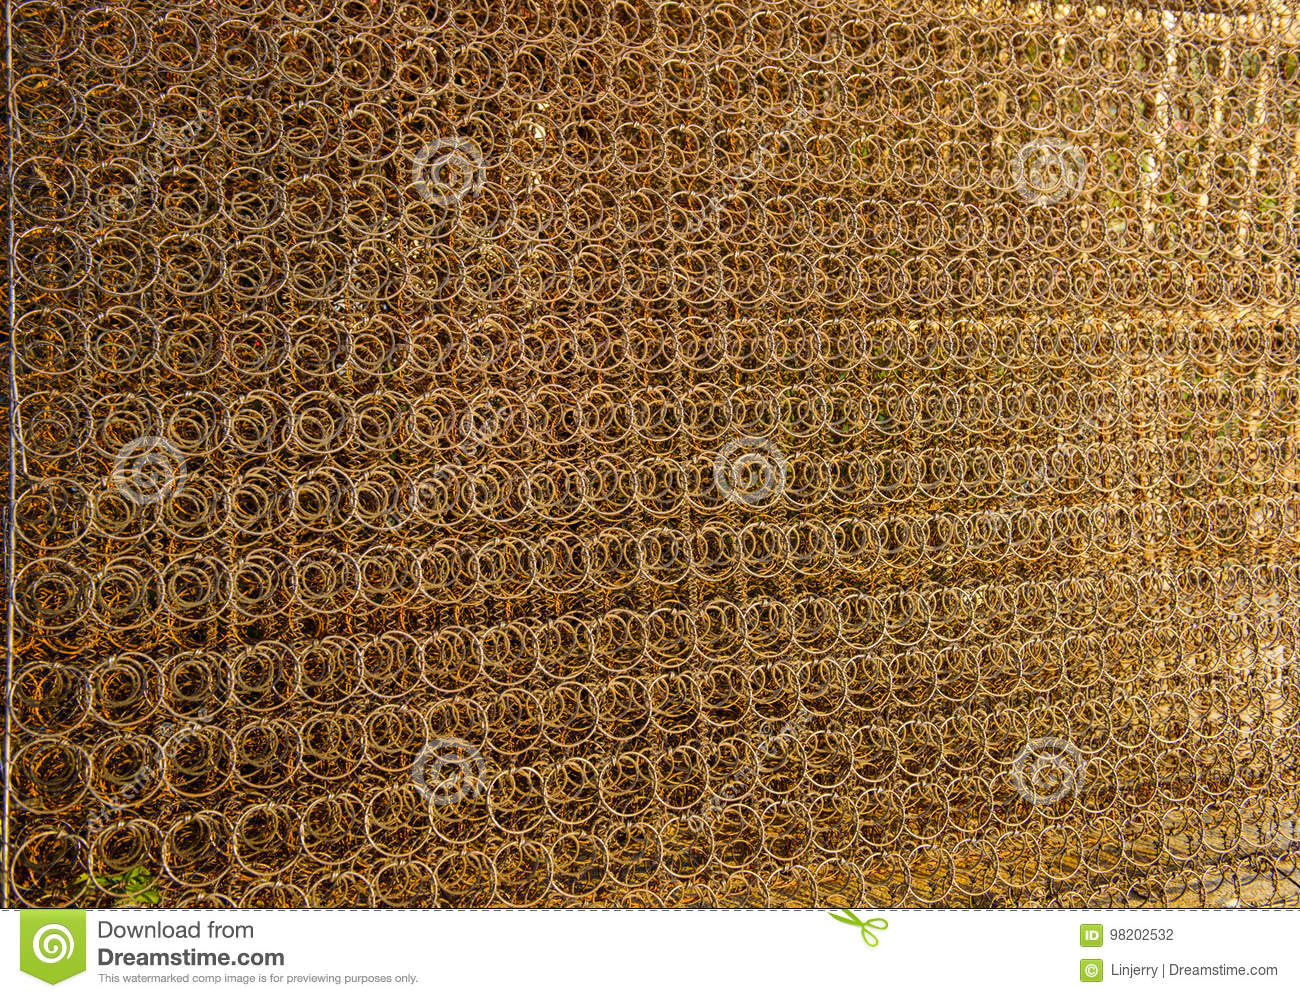 Rusty Iron Wire Fence Made From Old Mattress Stock Photo Image Of Material Metal 98202532